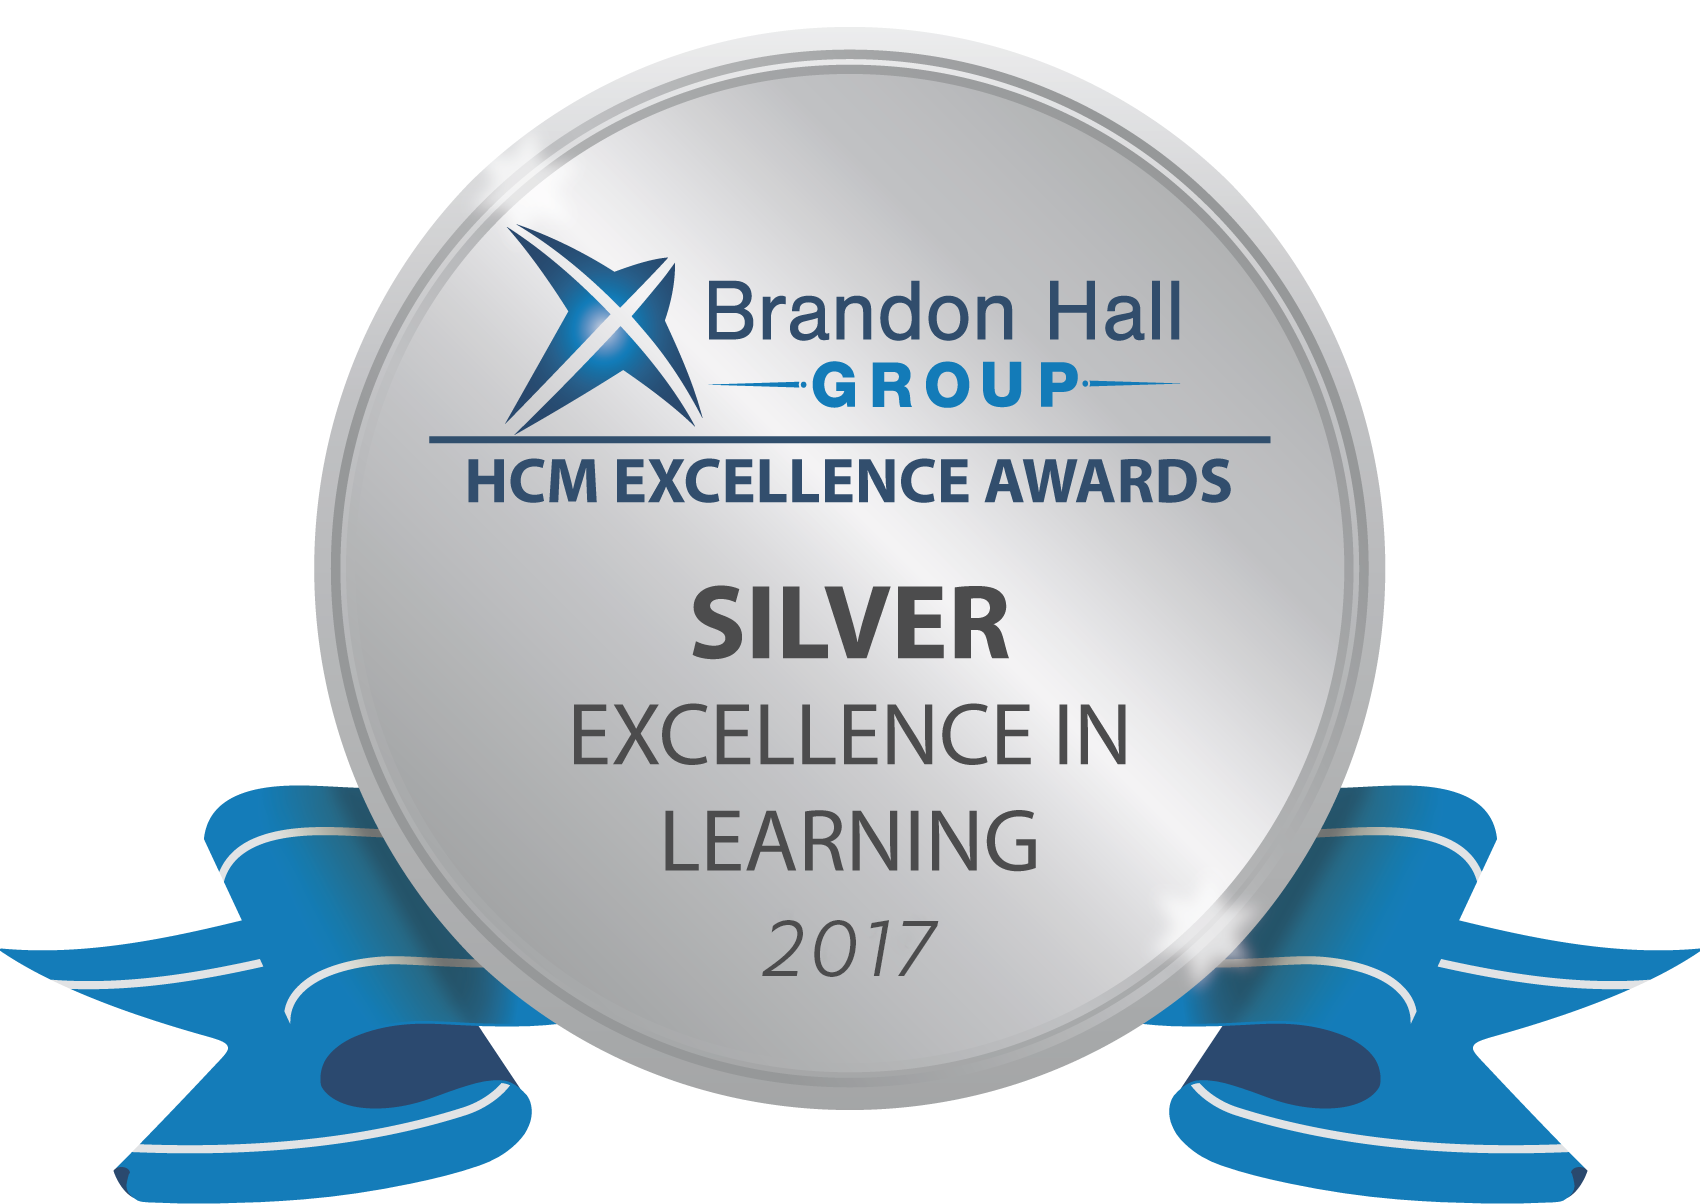 EXCELLENCE IN LEARNING - Best Learning Program Supporting a Change Transformation Business Strategy